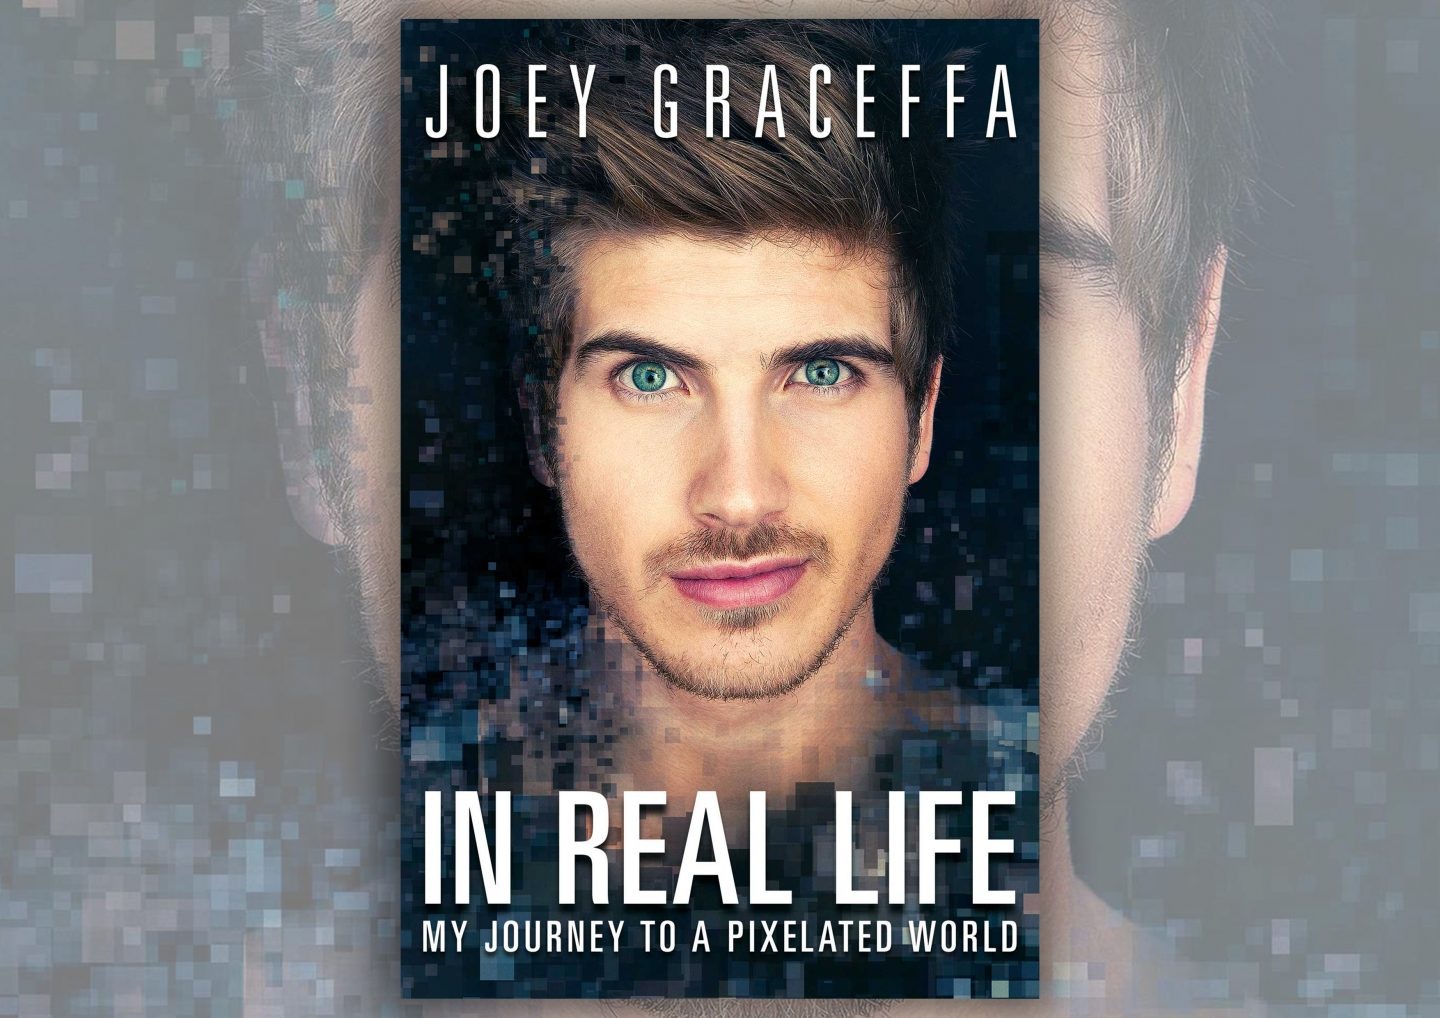 Review: In Real Life: My Journey to a Pixelated World by Joey Graceffa